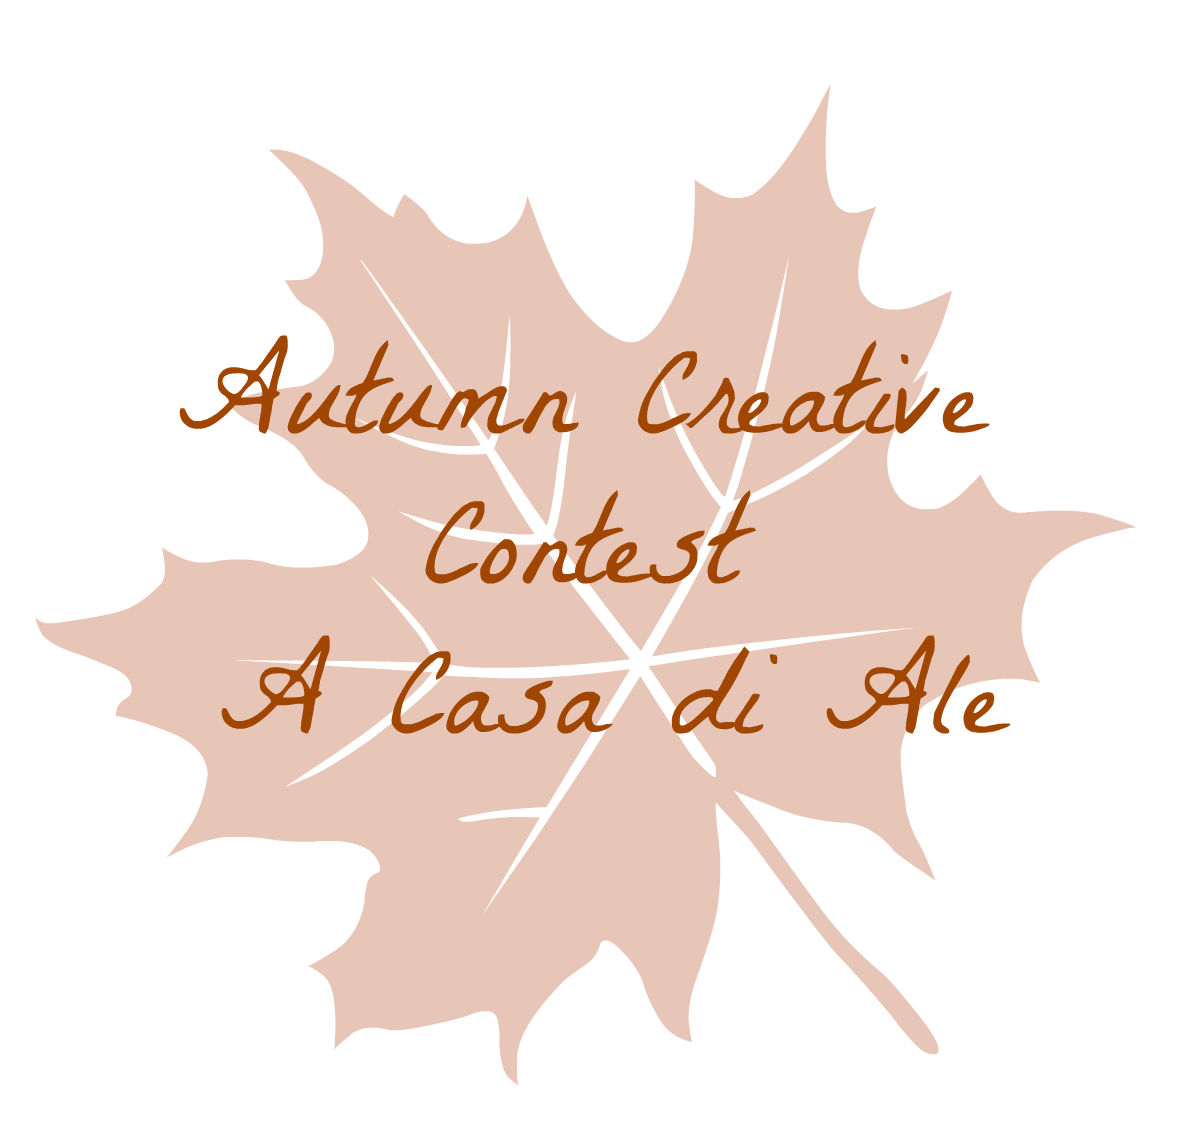 Autumn Creative Contest